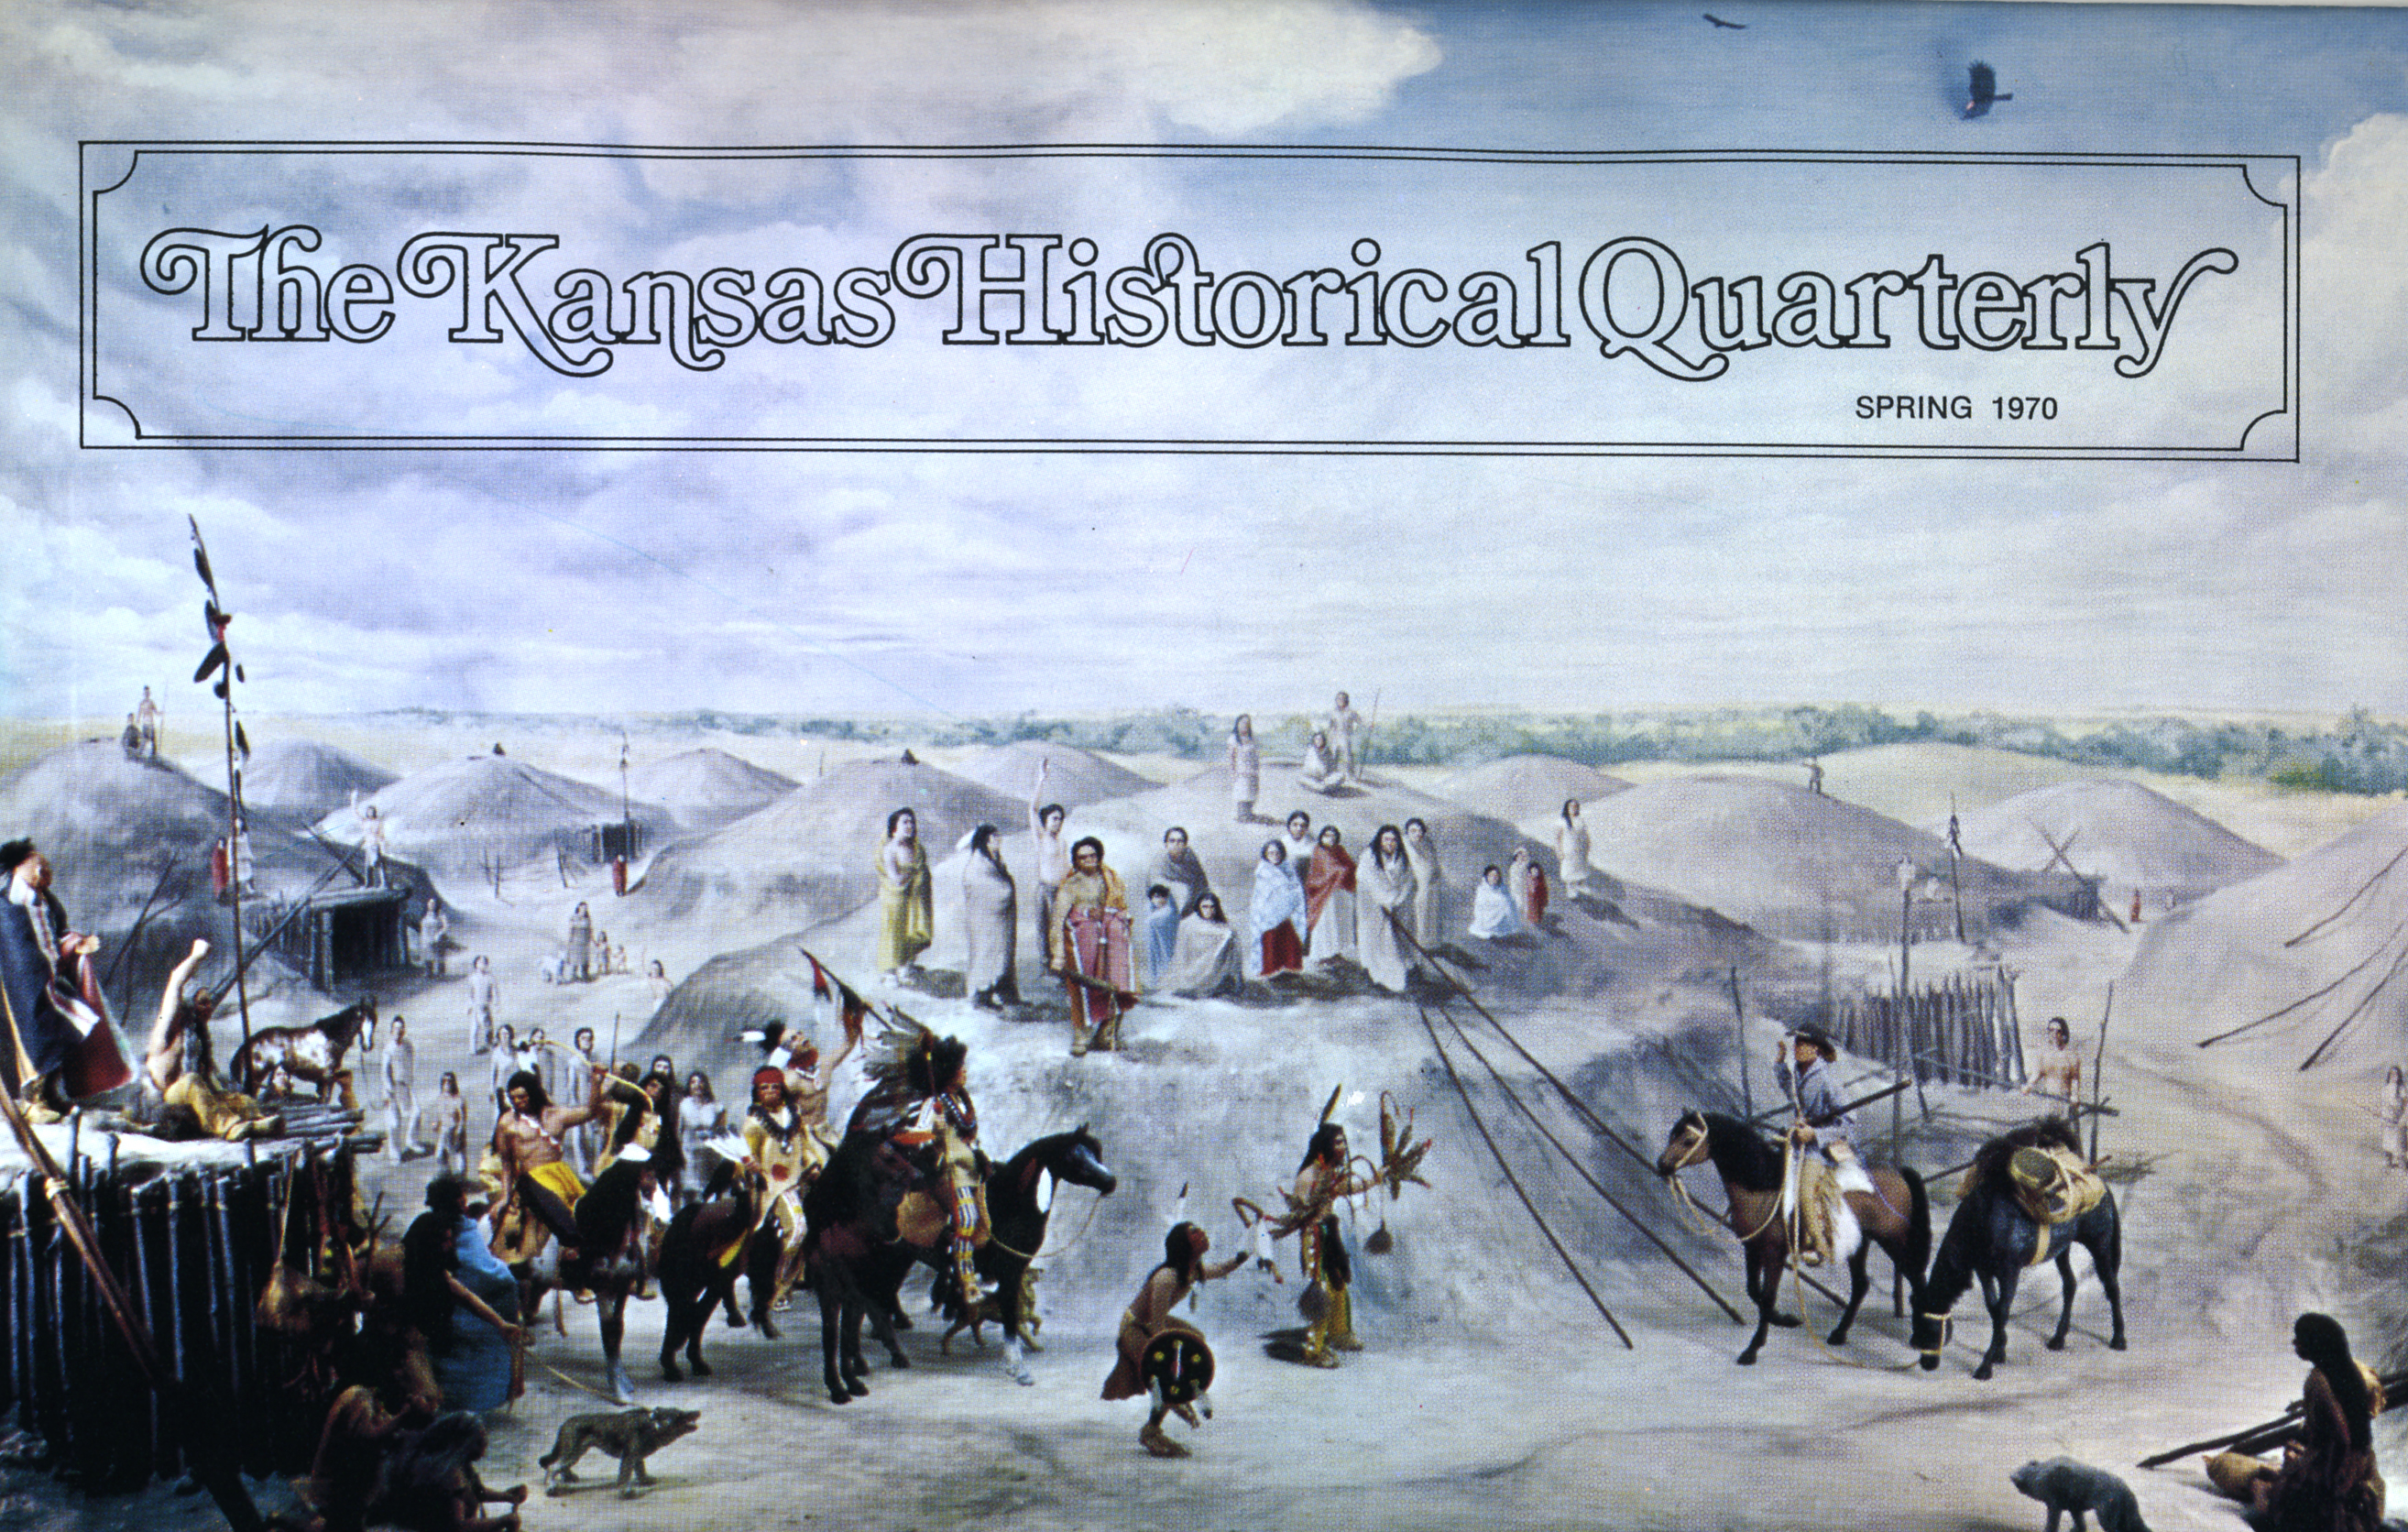 Kansas Historical Quarterly, Spring 1970